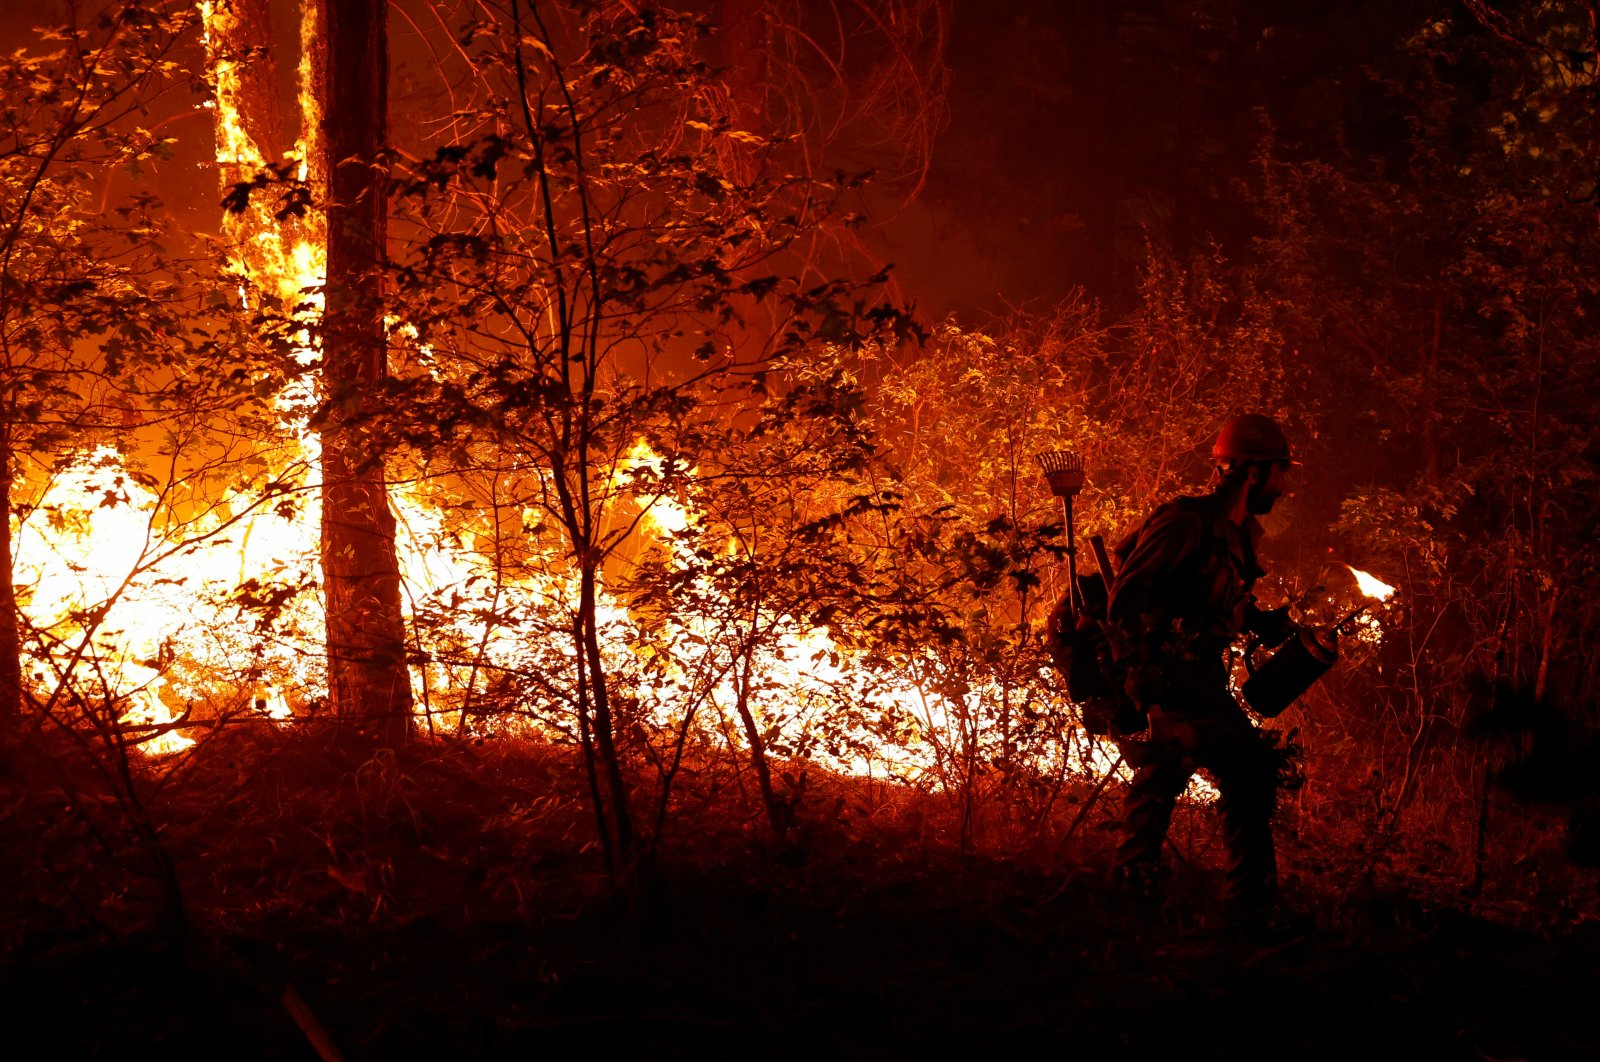 U.S. Forest Service firefighter Ben Foley lights backfires to slow the spread of the Dixie Fire, a wildfire near the town of Greenville, California, U.S., Aug. 6, 2021. (Reuters Photo)